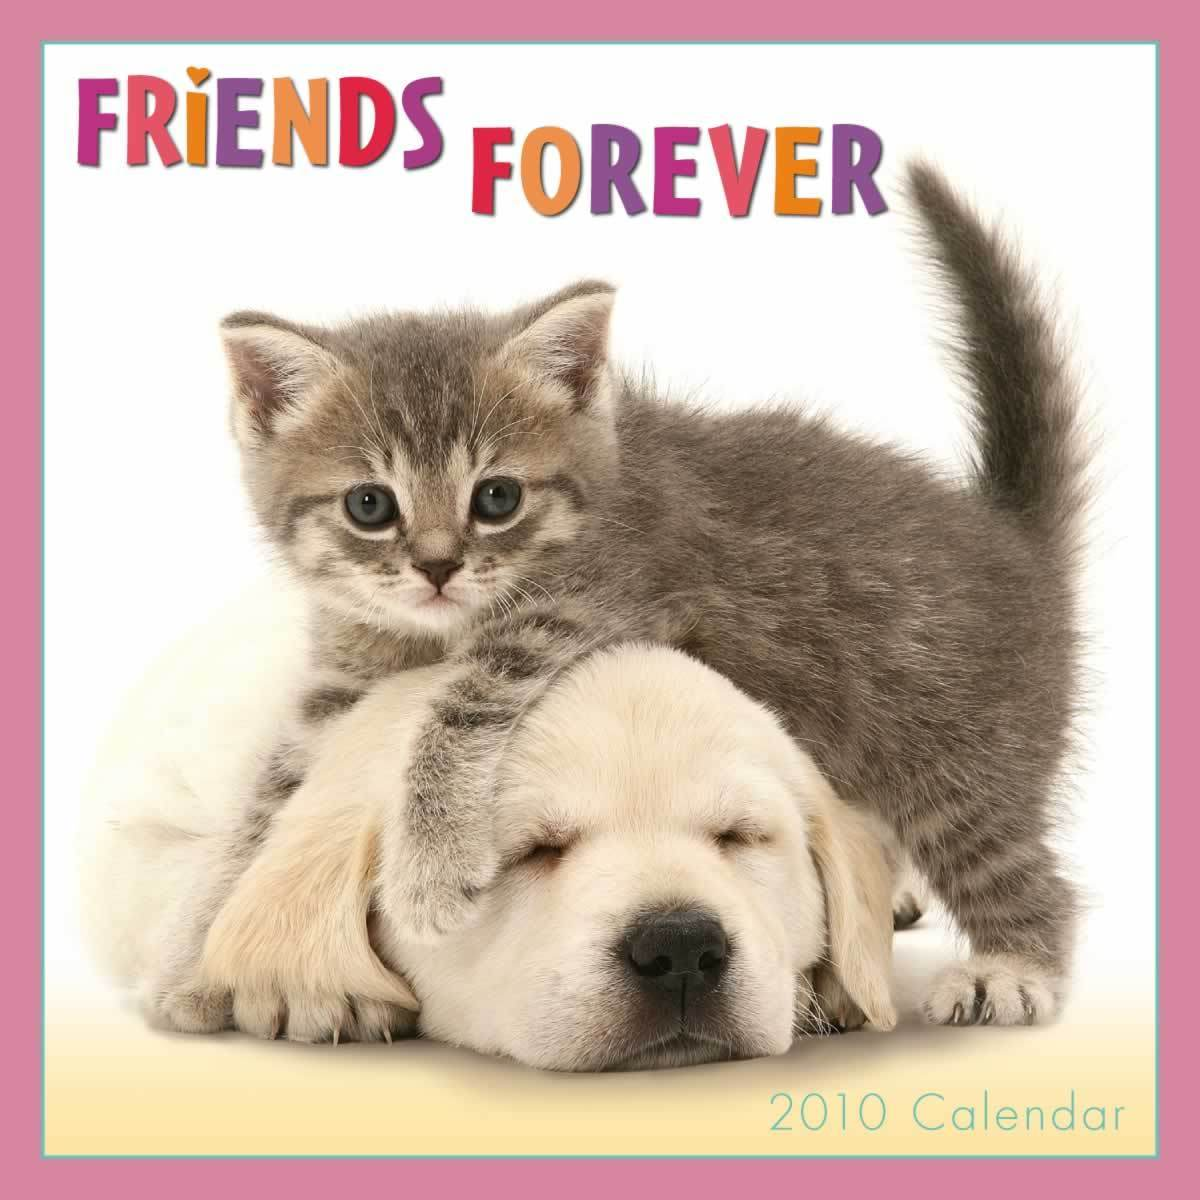 Bff Quotes Wallpapers Quotes About Best Friends Forever Quotesgram